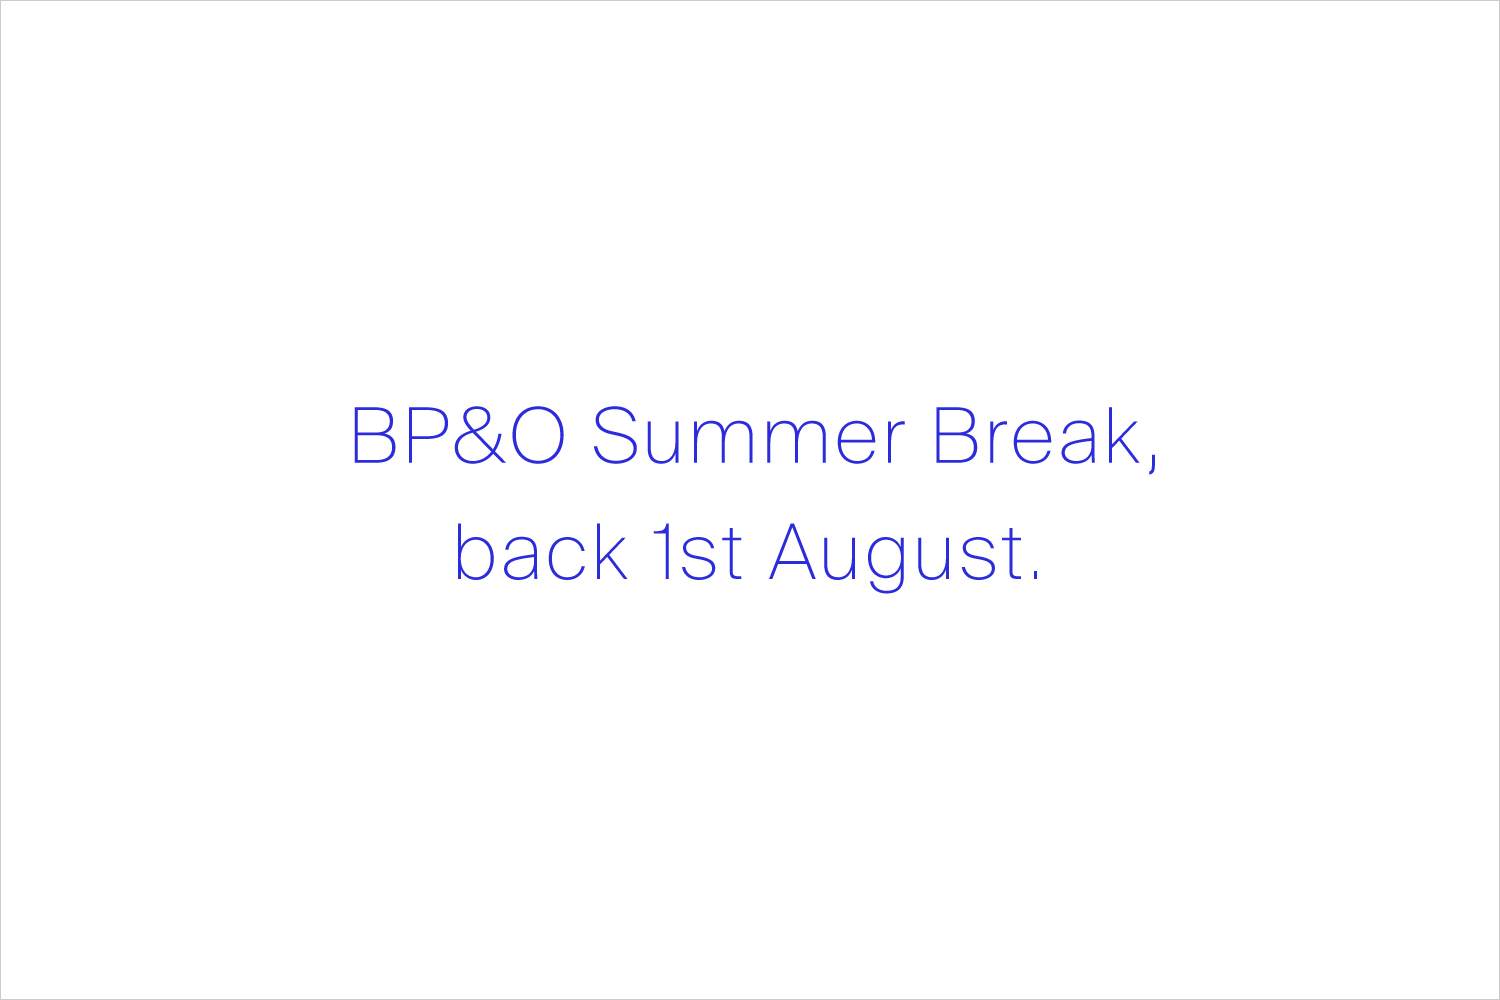 BP&O Summer Break